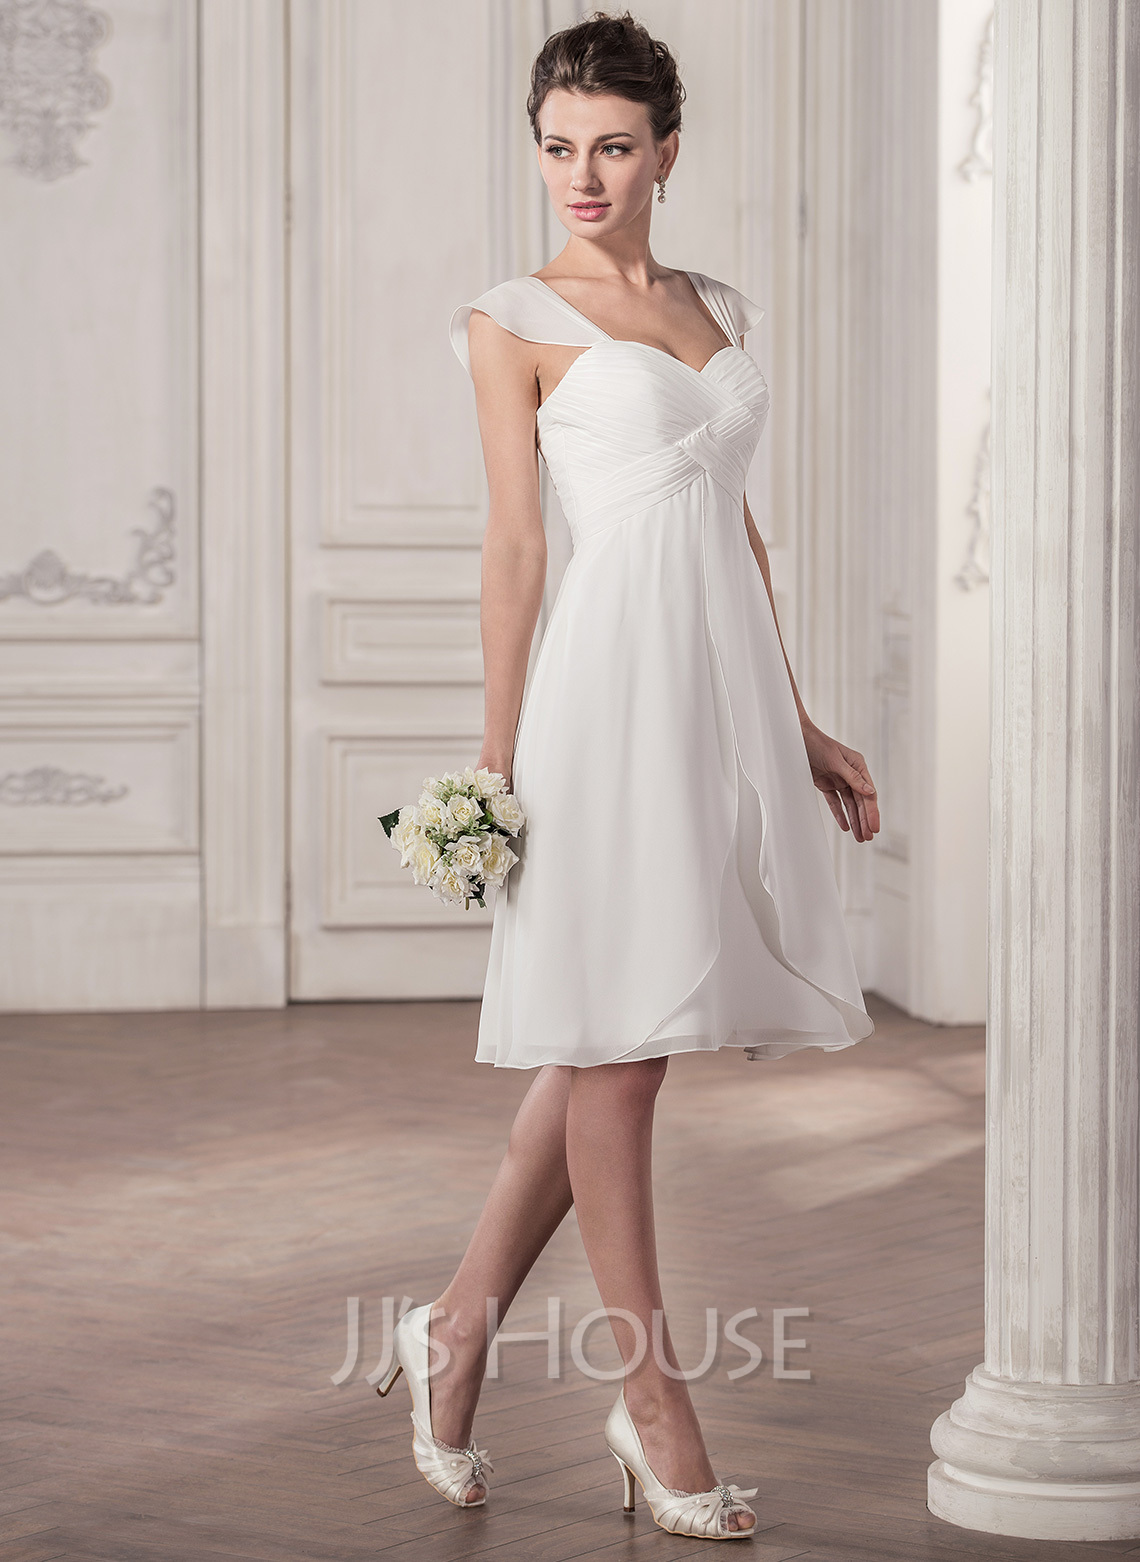 Knie Lange Kleider A Line Princess Sweetheart Knee Length Chiffon Wedding